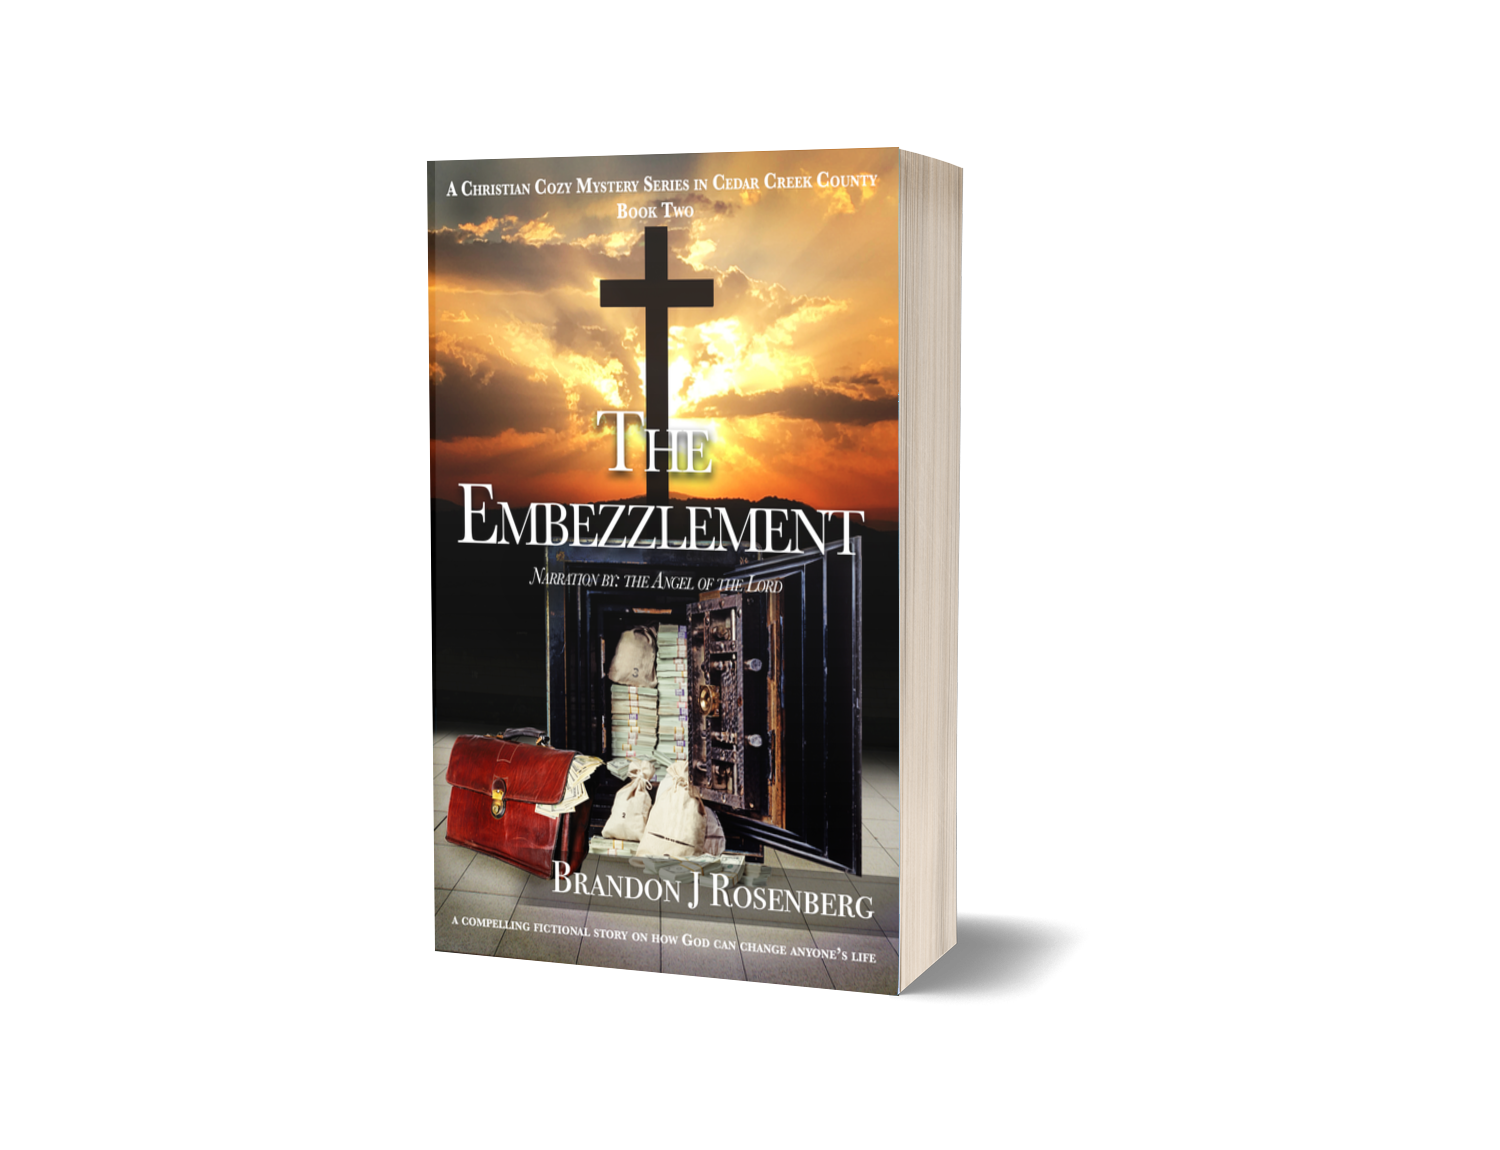 The Embezzlement - Book Two (Autographed by Brandon J Rosenberg)